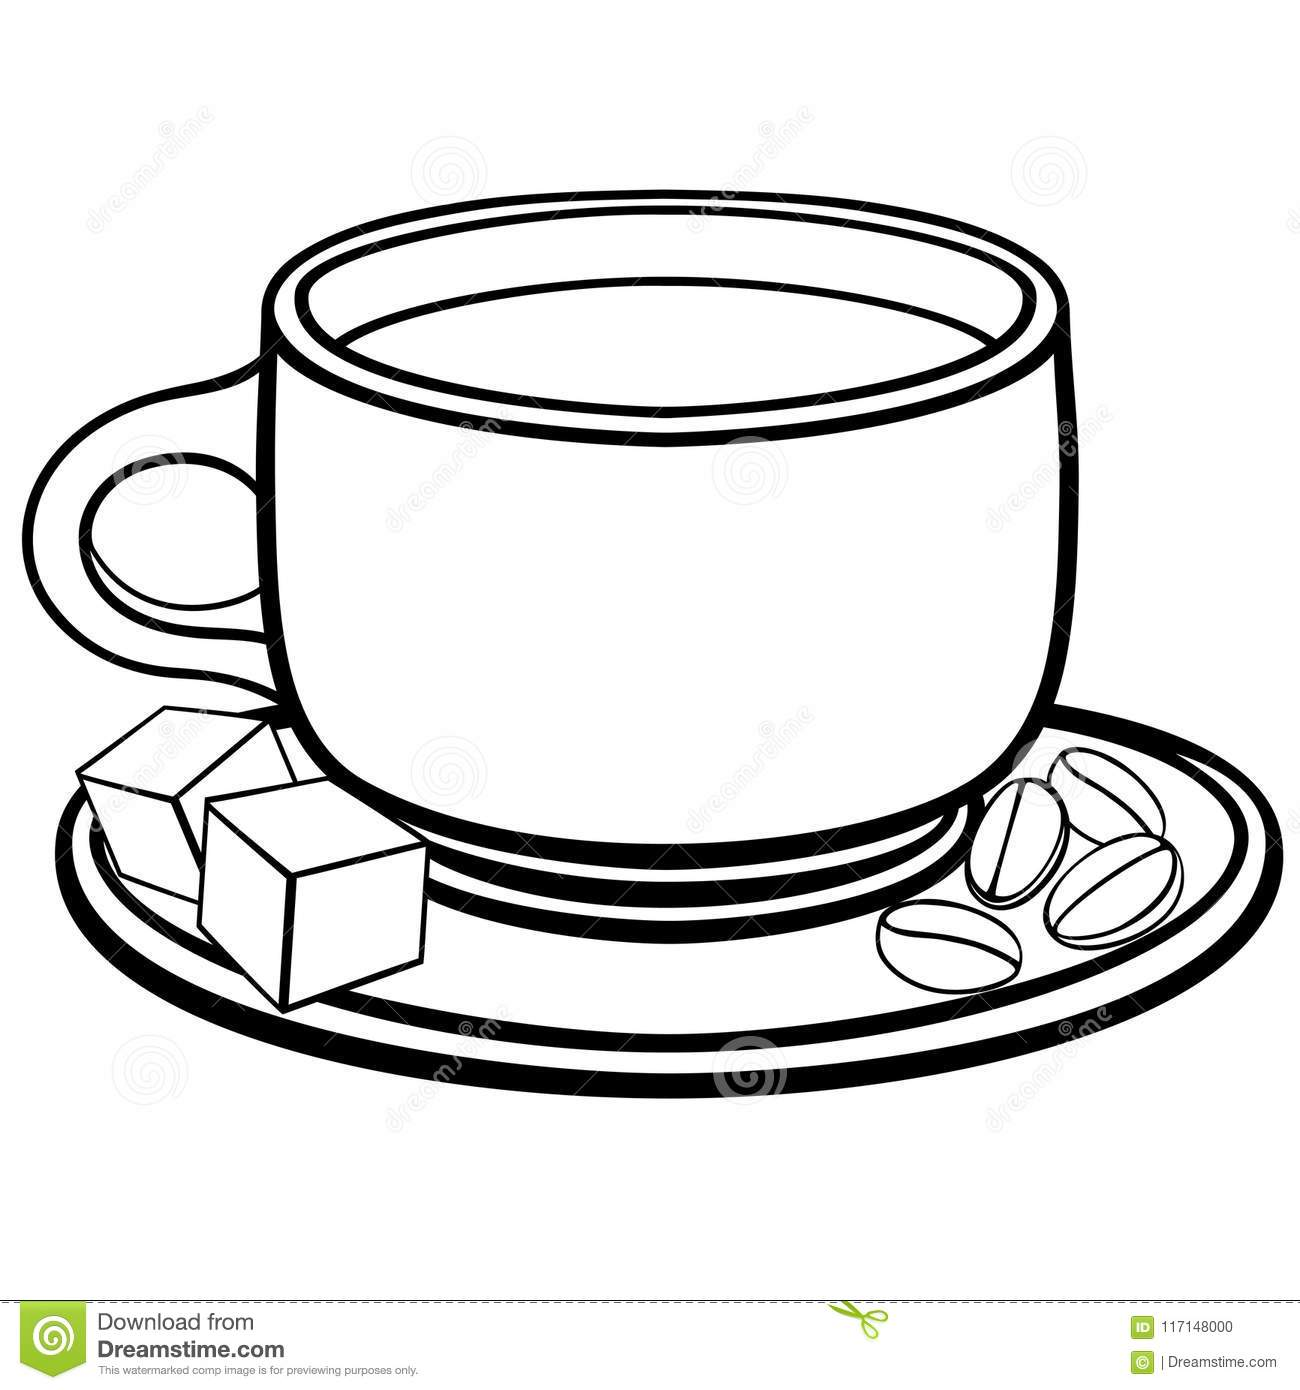 A Cup Of Coffee On A Saucer Coffee Beans And Sugar Pieces Line Drawing For Colorin Stock Vector Illustration Of Coffee Dishes 117148000